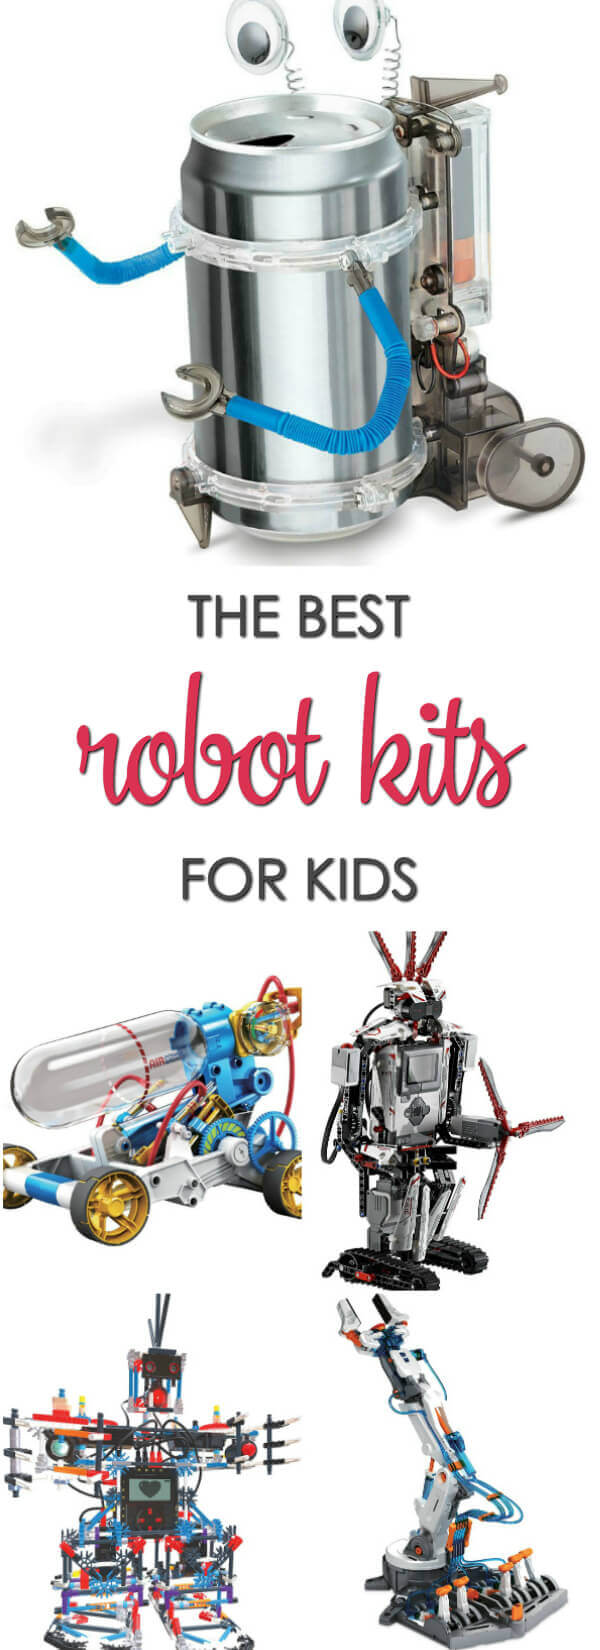 If your child loves to play with and build robots you have to check out these awesome robot kits for kids.